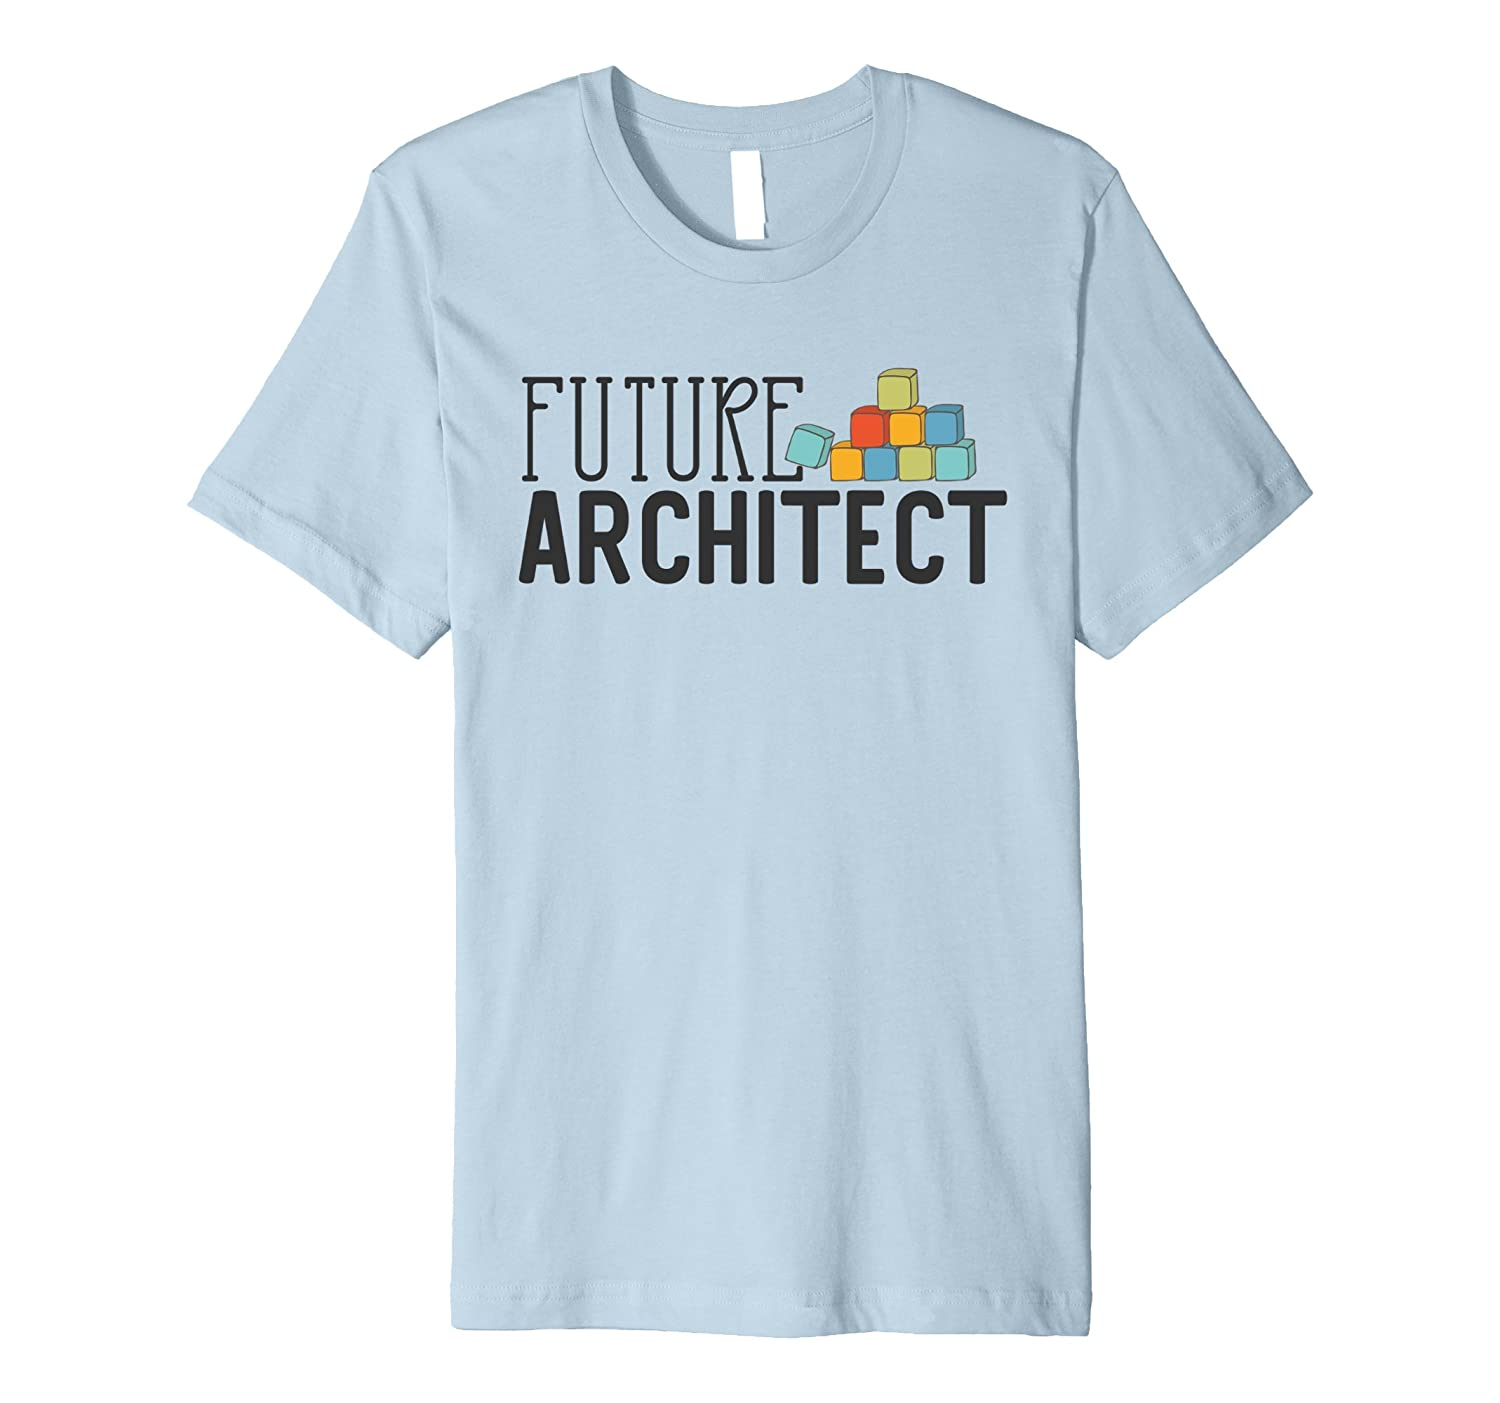 Future Architect - Kids Dream Job T Shirts for Kids-TJ